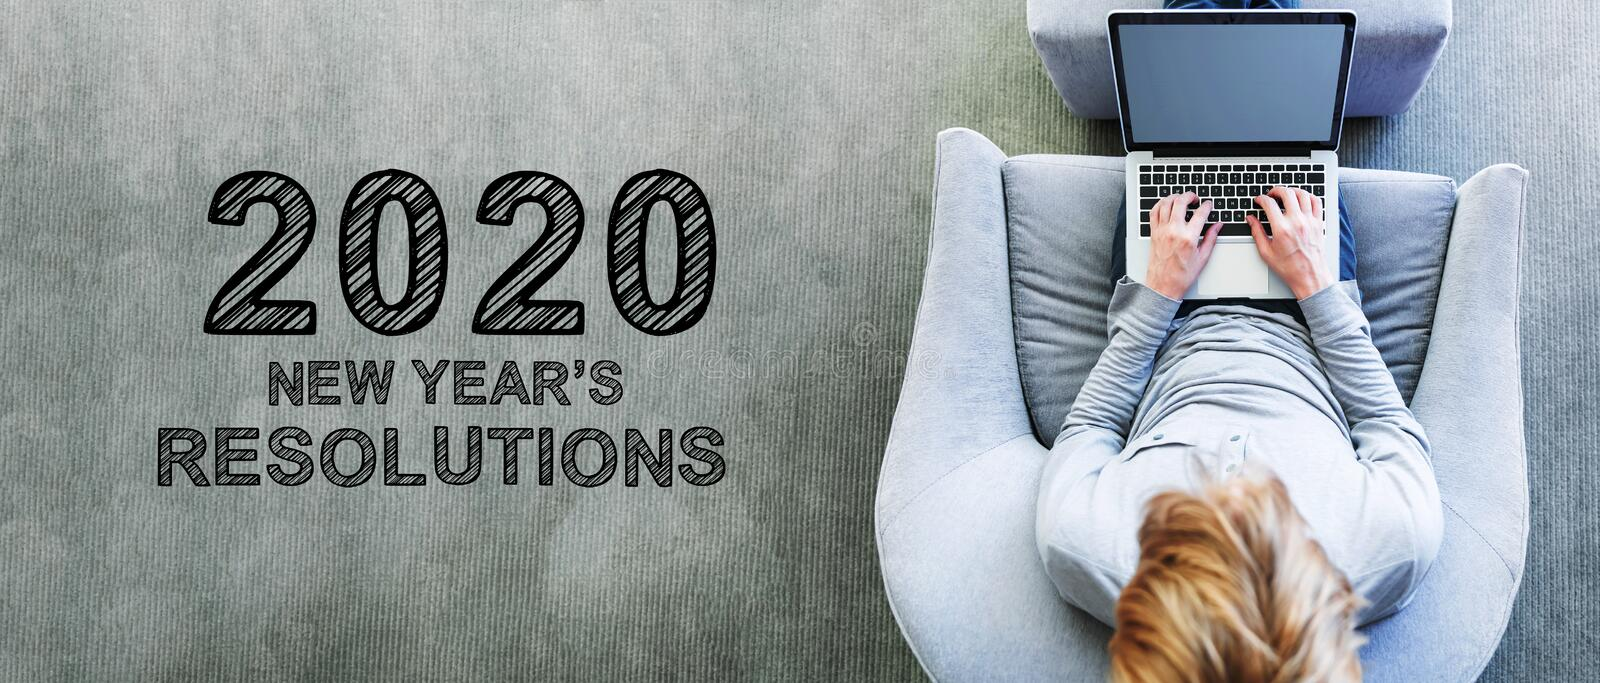 2020 New Years Resolutions with man using a laptop stock photo